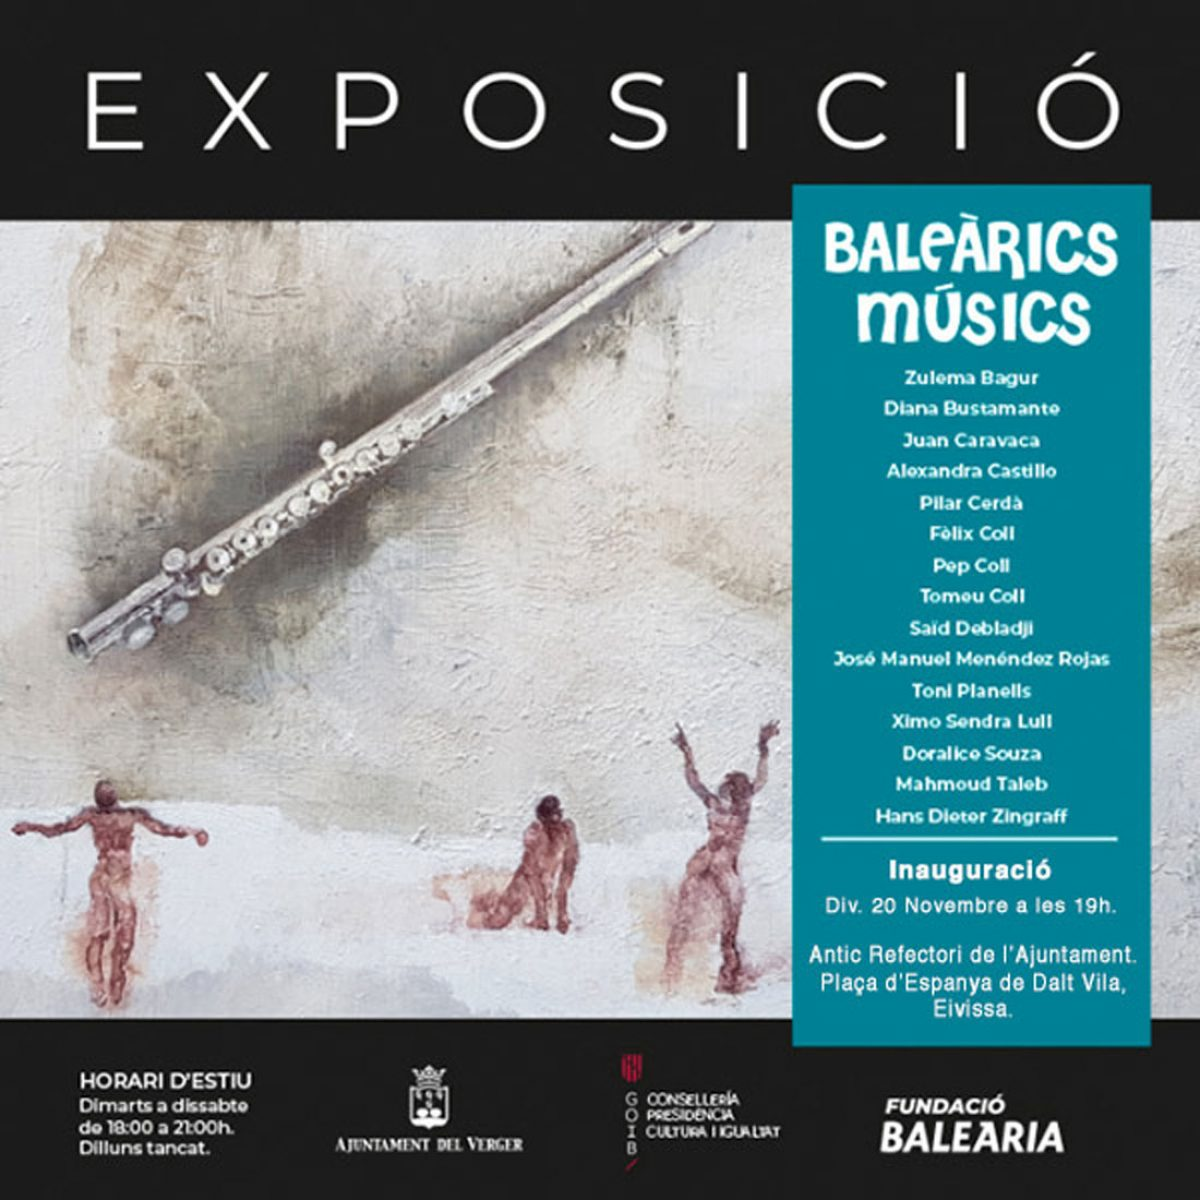 exposicio-Balearics-musics-sala-refectori-Eivissa-2020-welcometoibiza